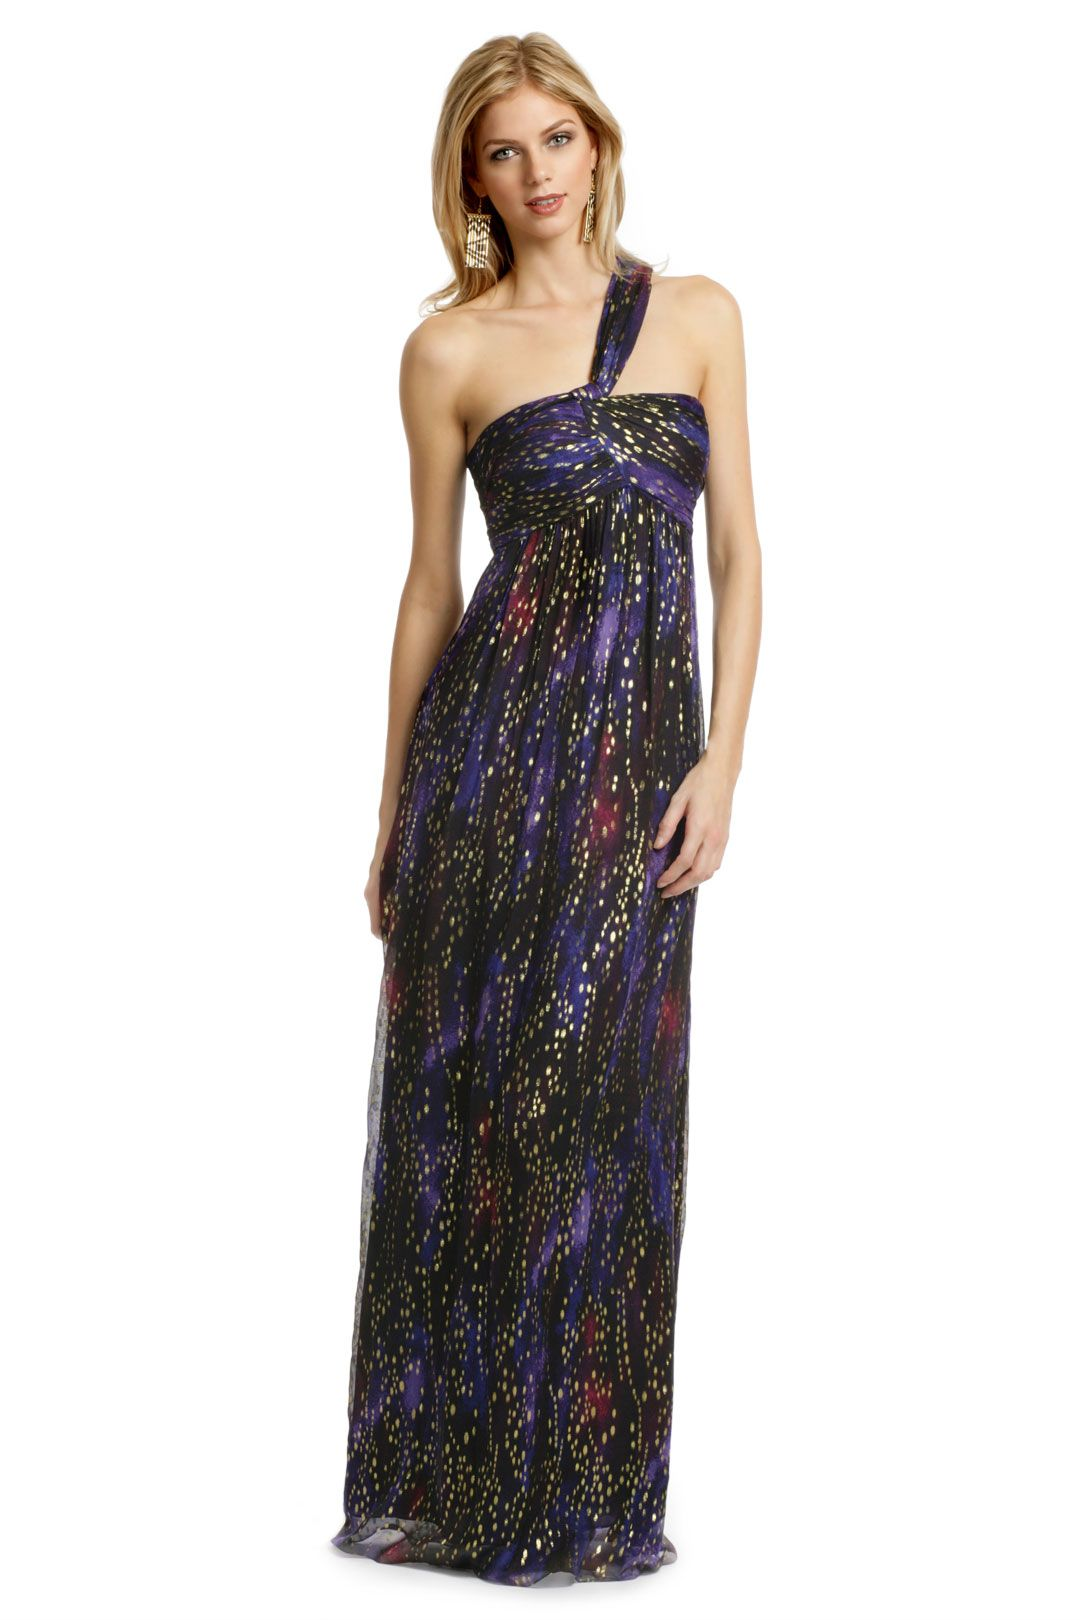 Majestic waters gown nicole miller gowns and clothes